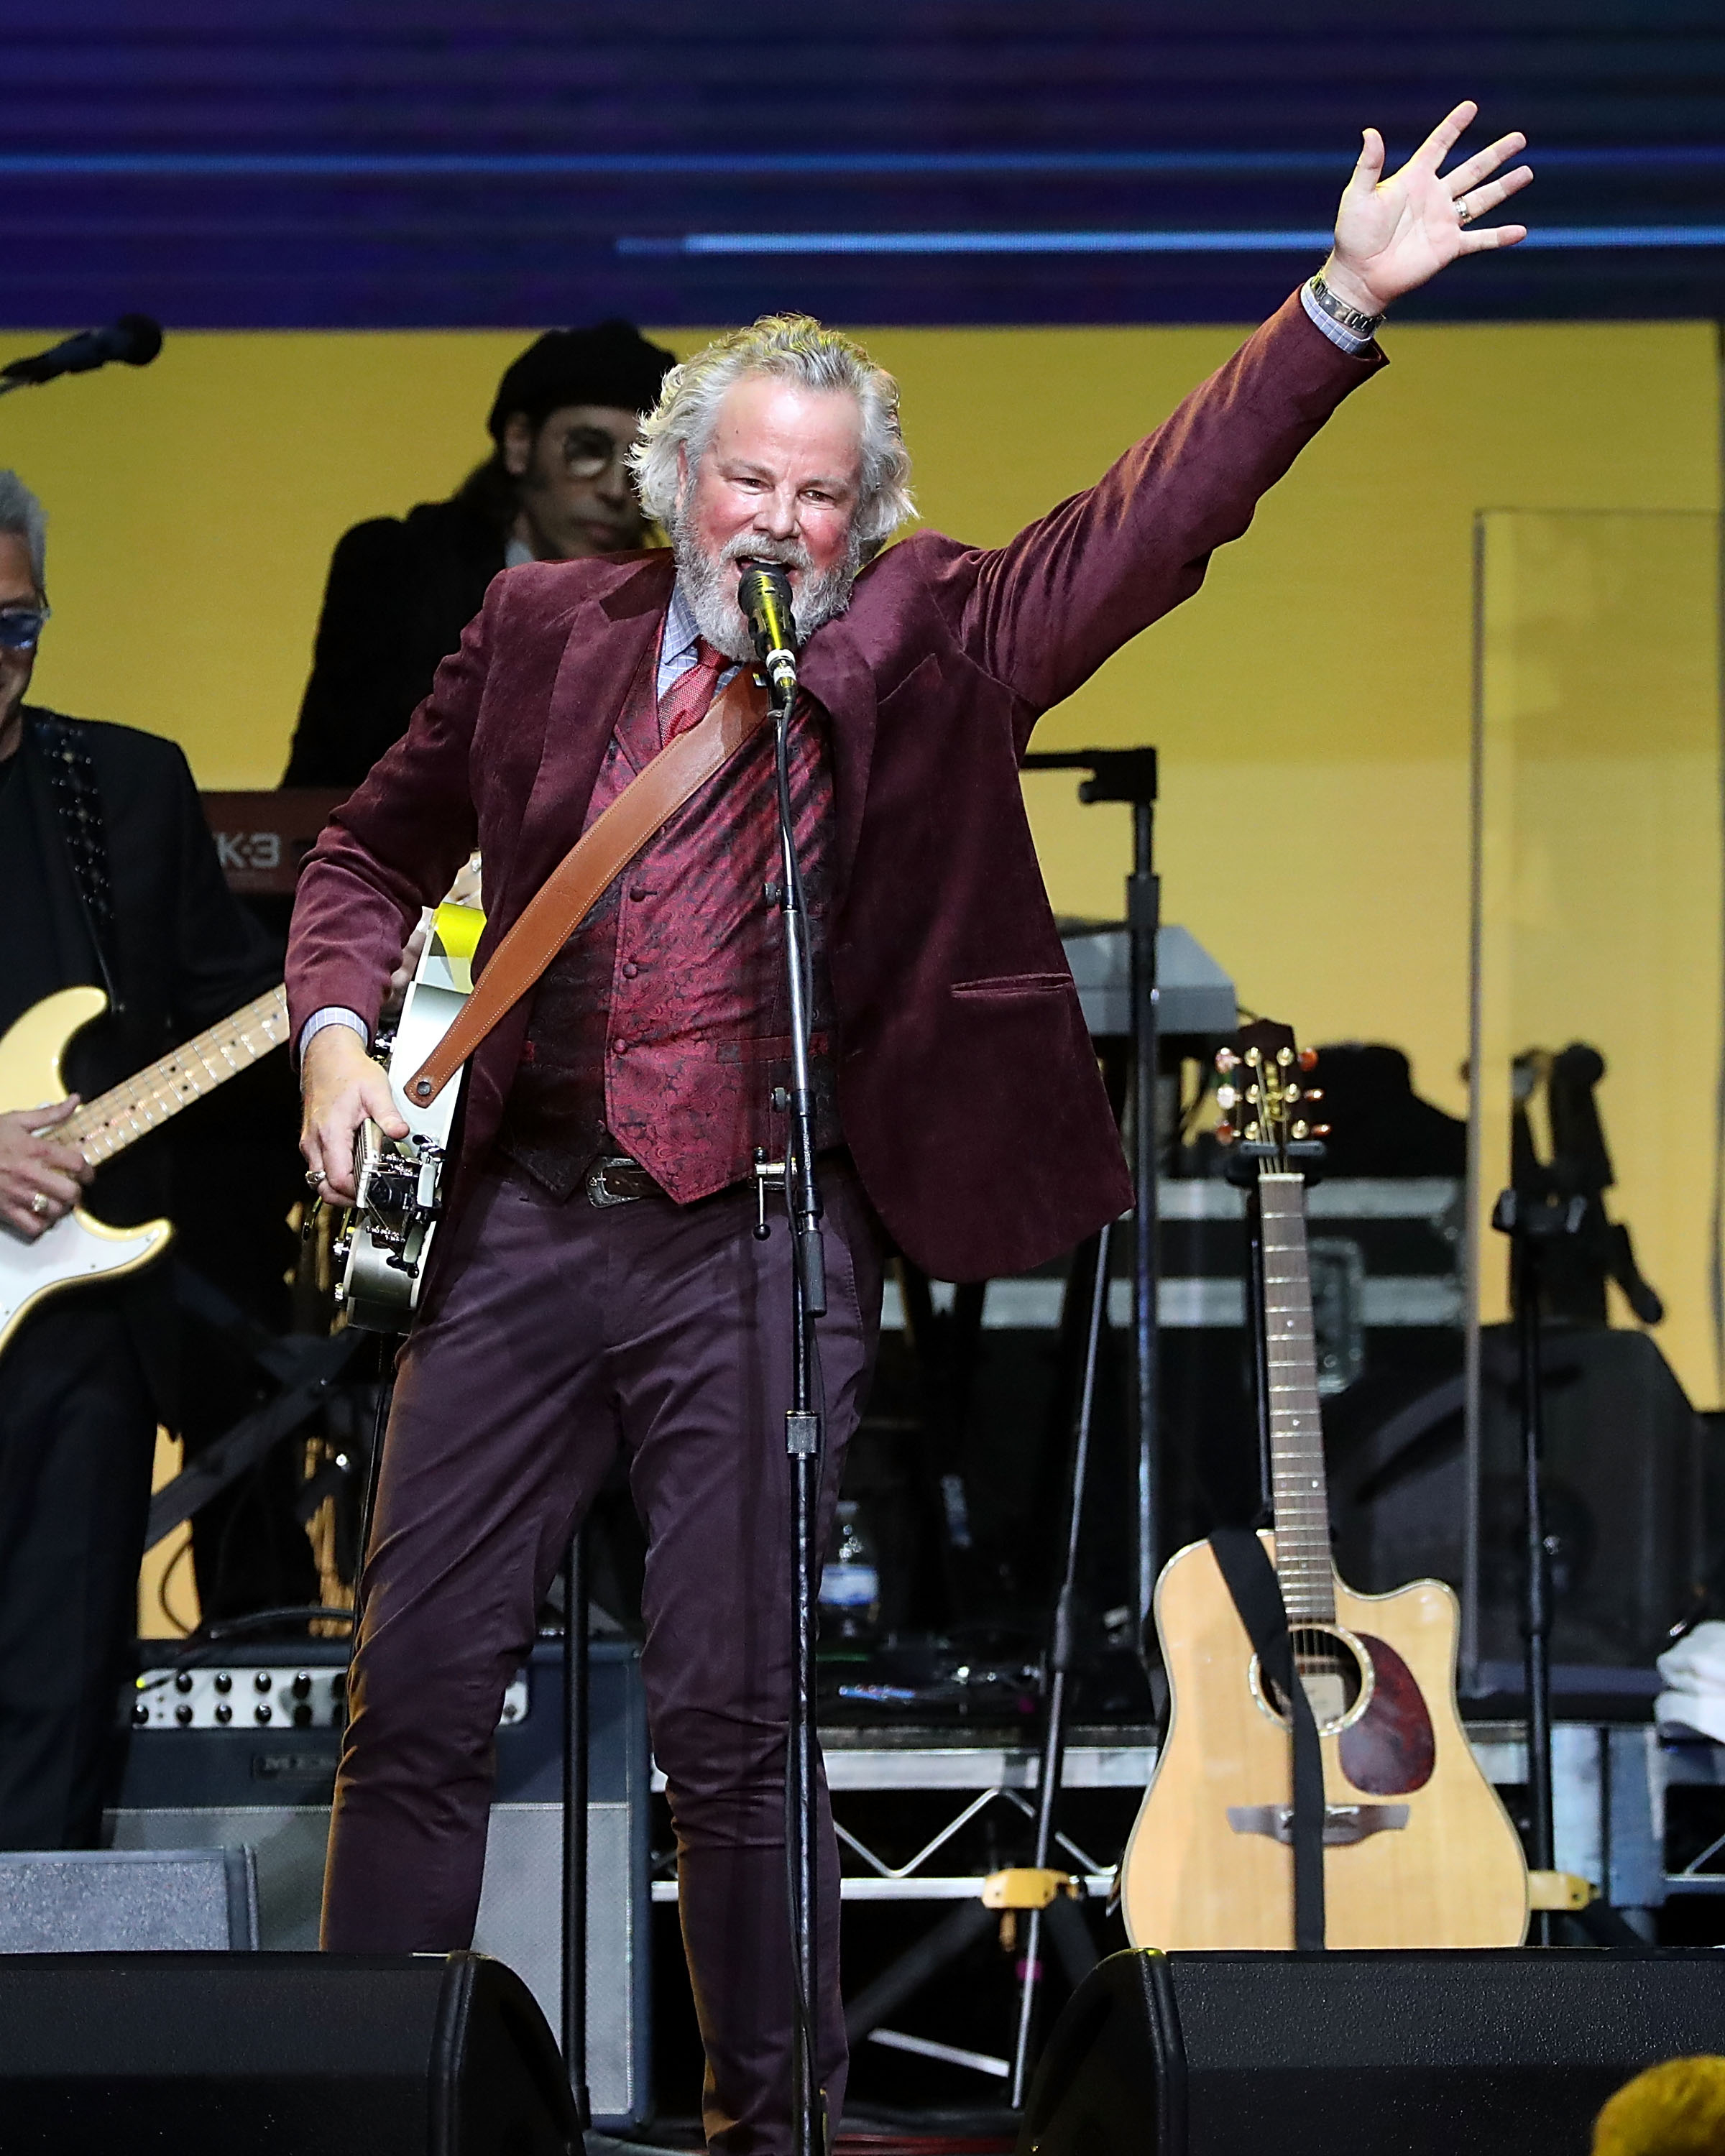 Robert Earl Keen Merry Christmas From The Family.Robert Earl Keen Plots New Christmas Tour Rolling Stone